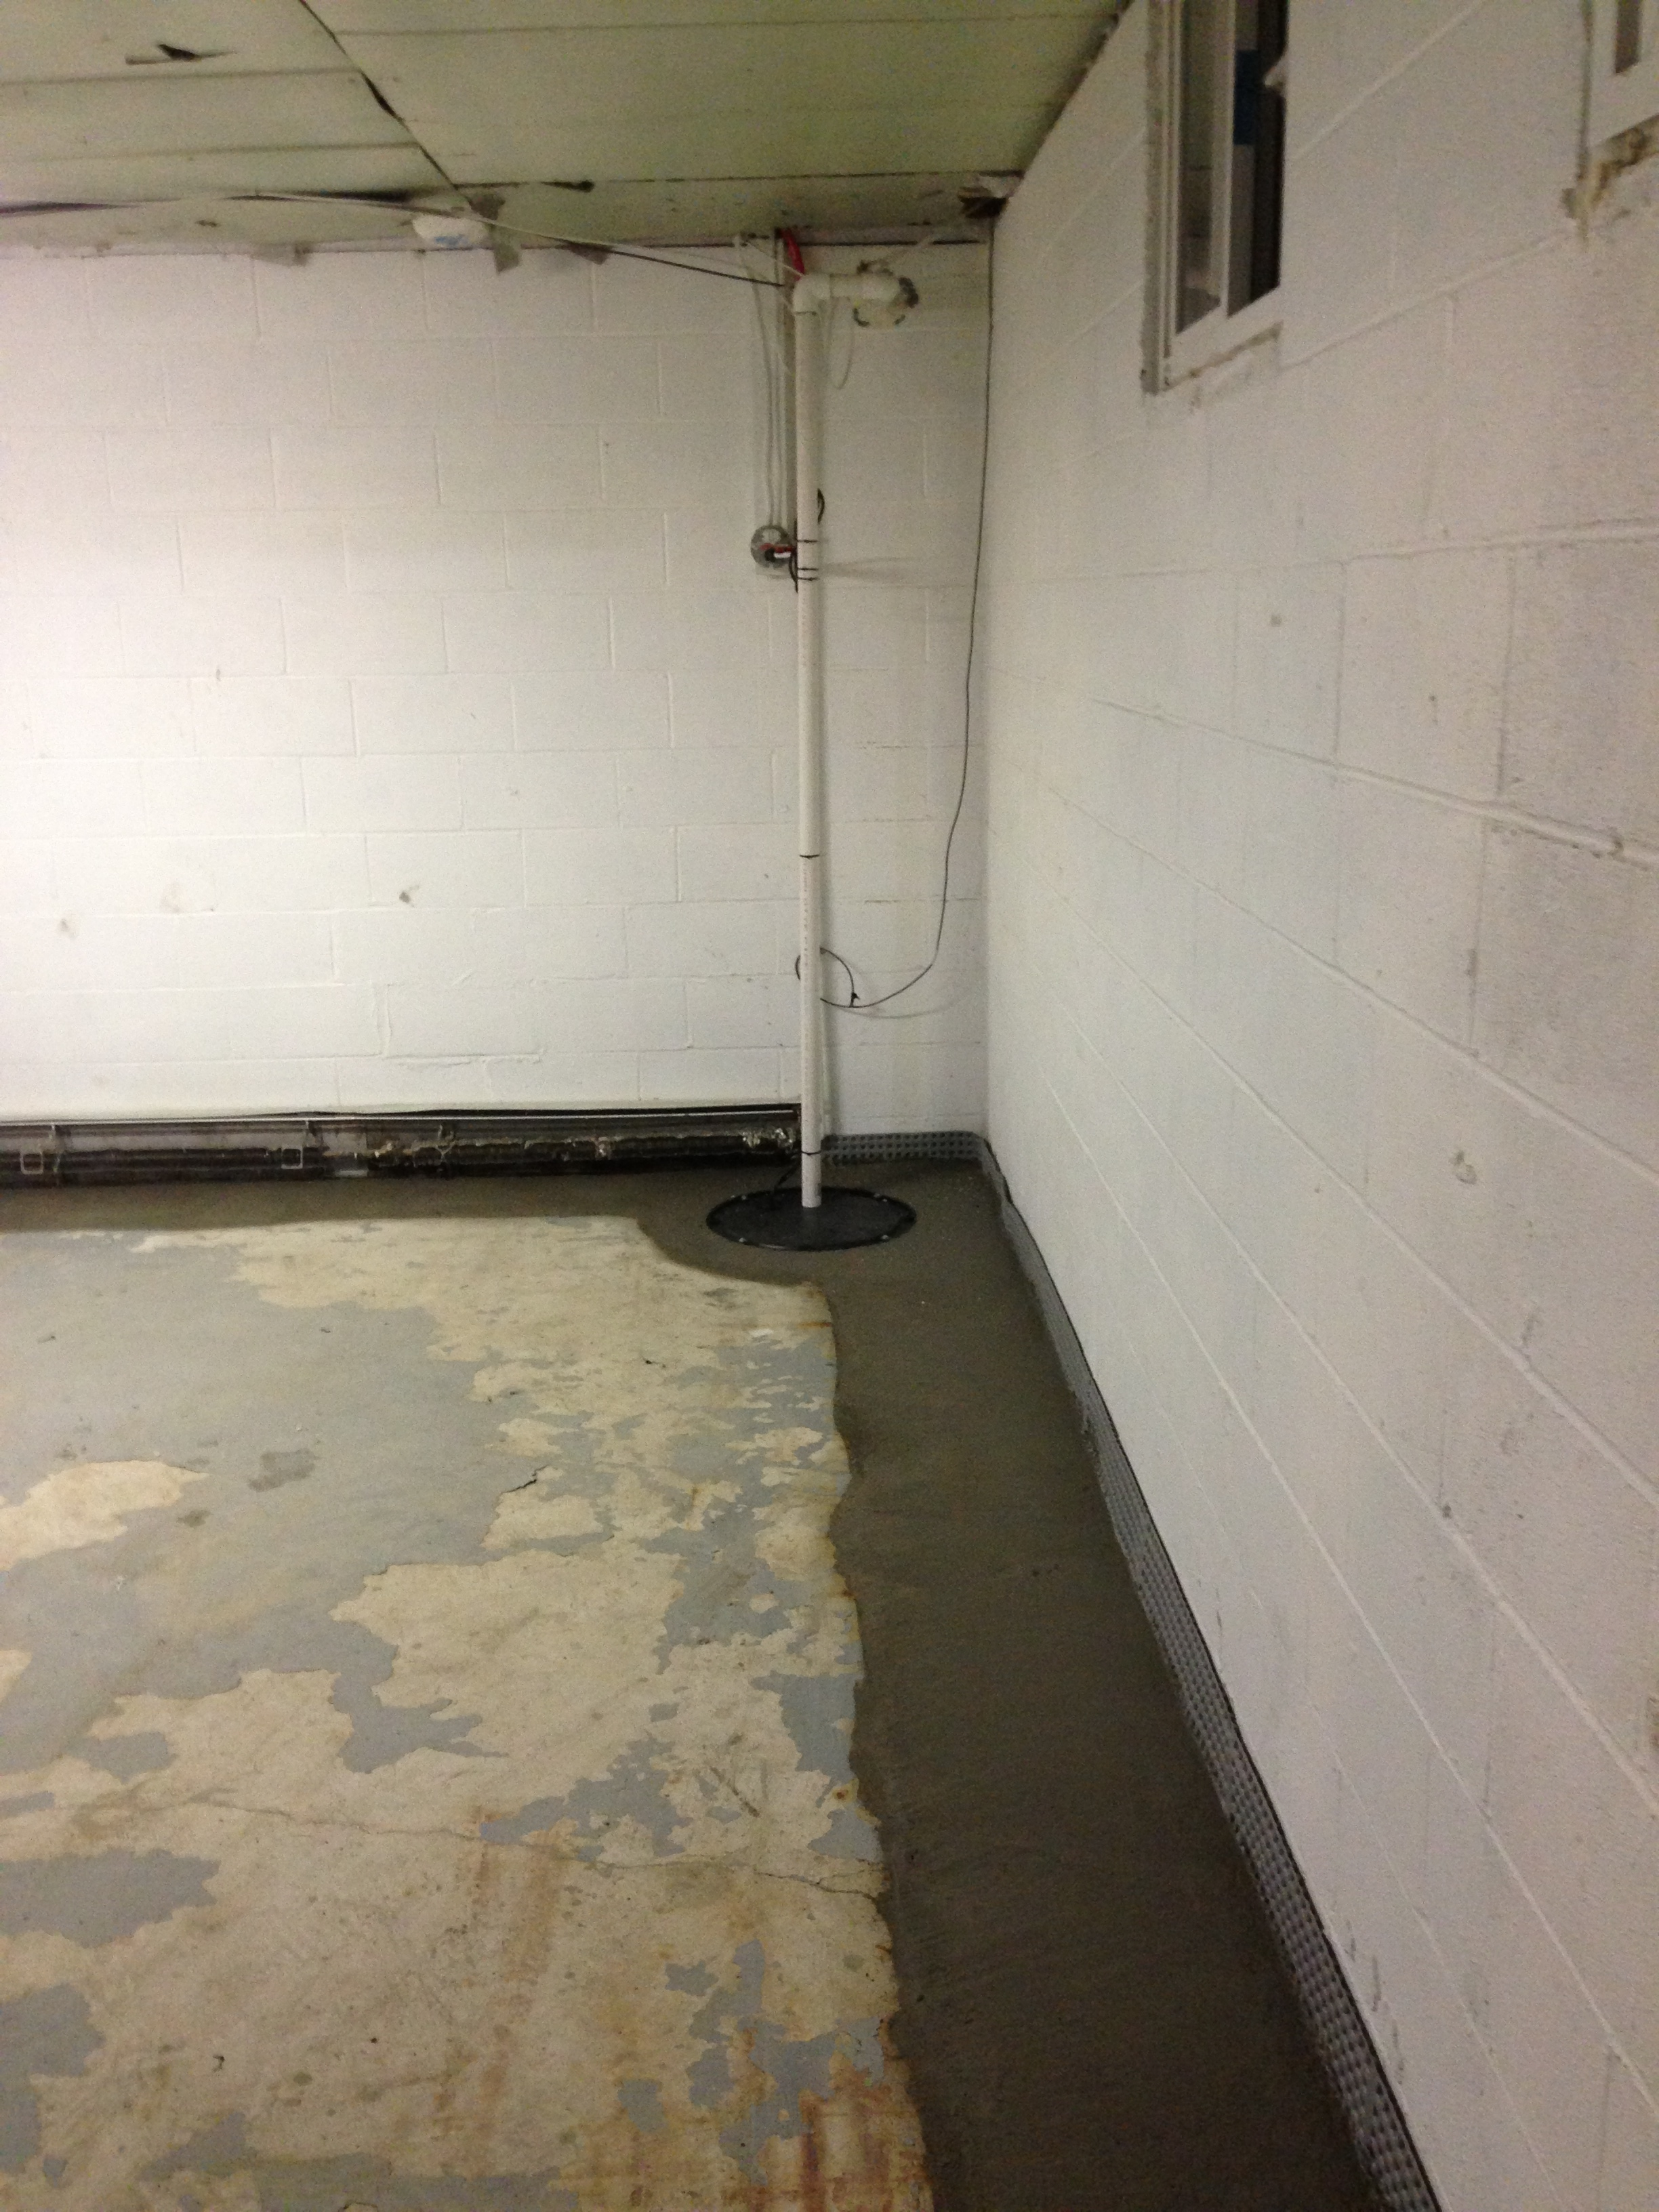 All dry basement systems llc in danbury ct 06810 for Dry basement